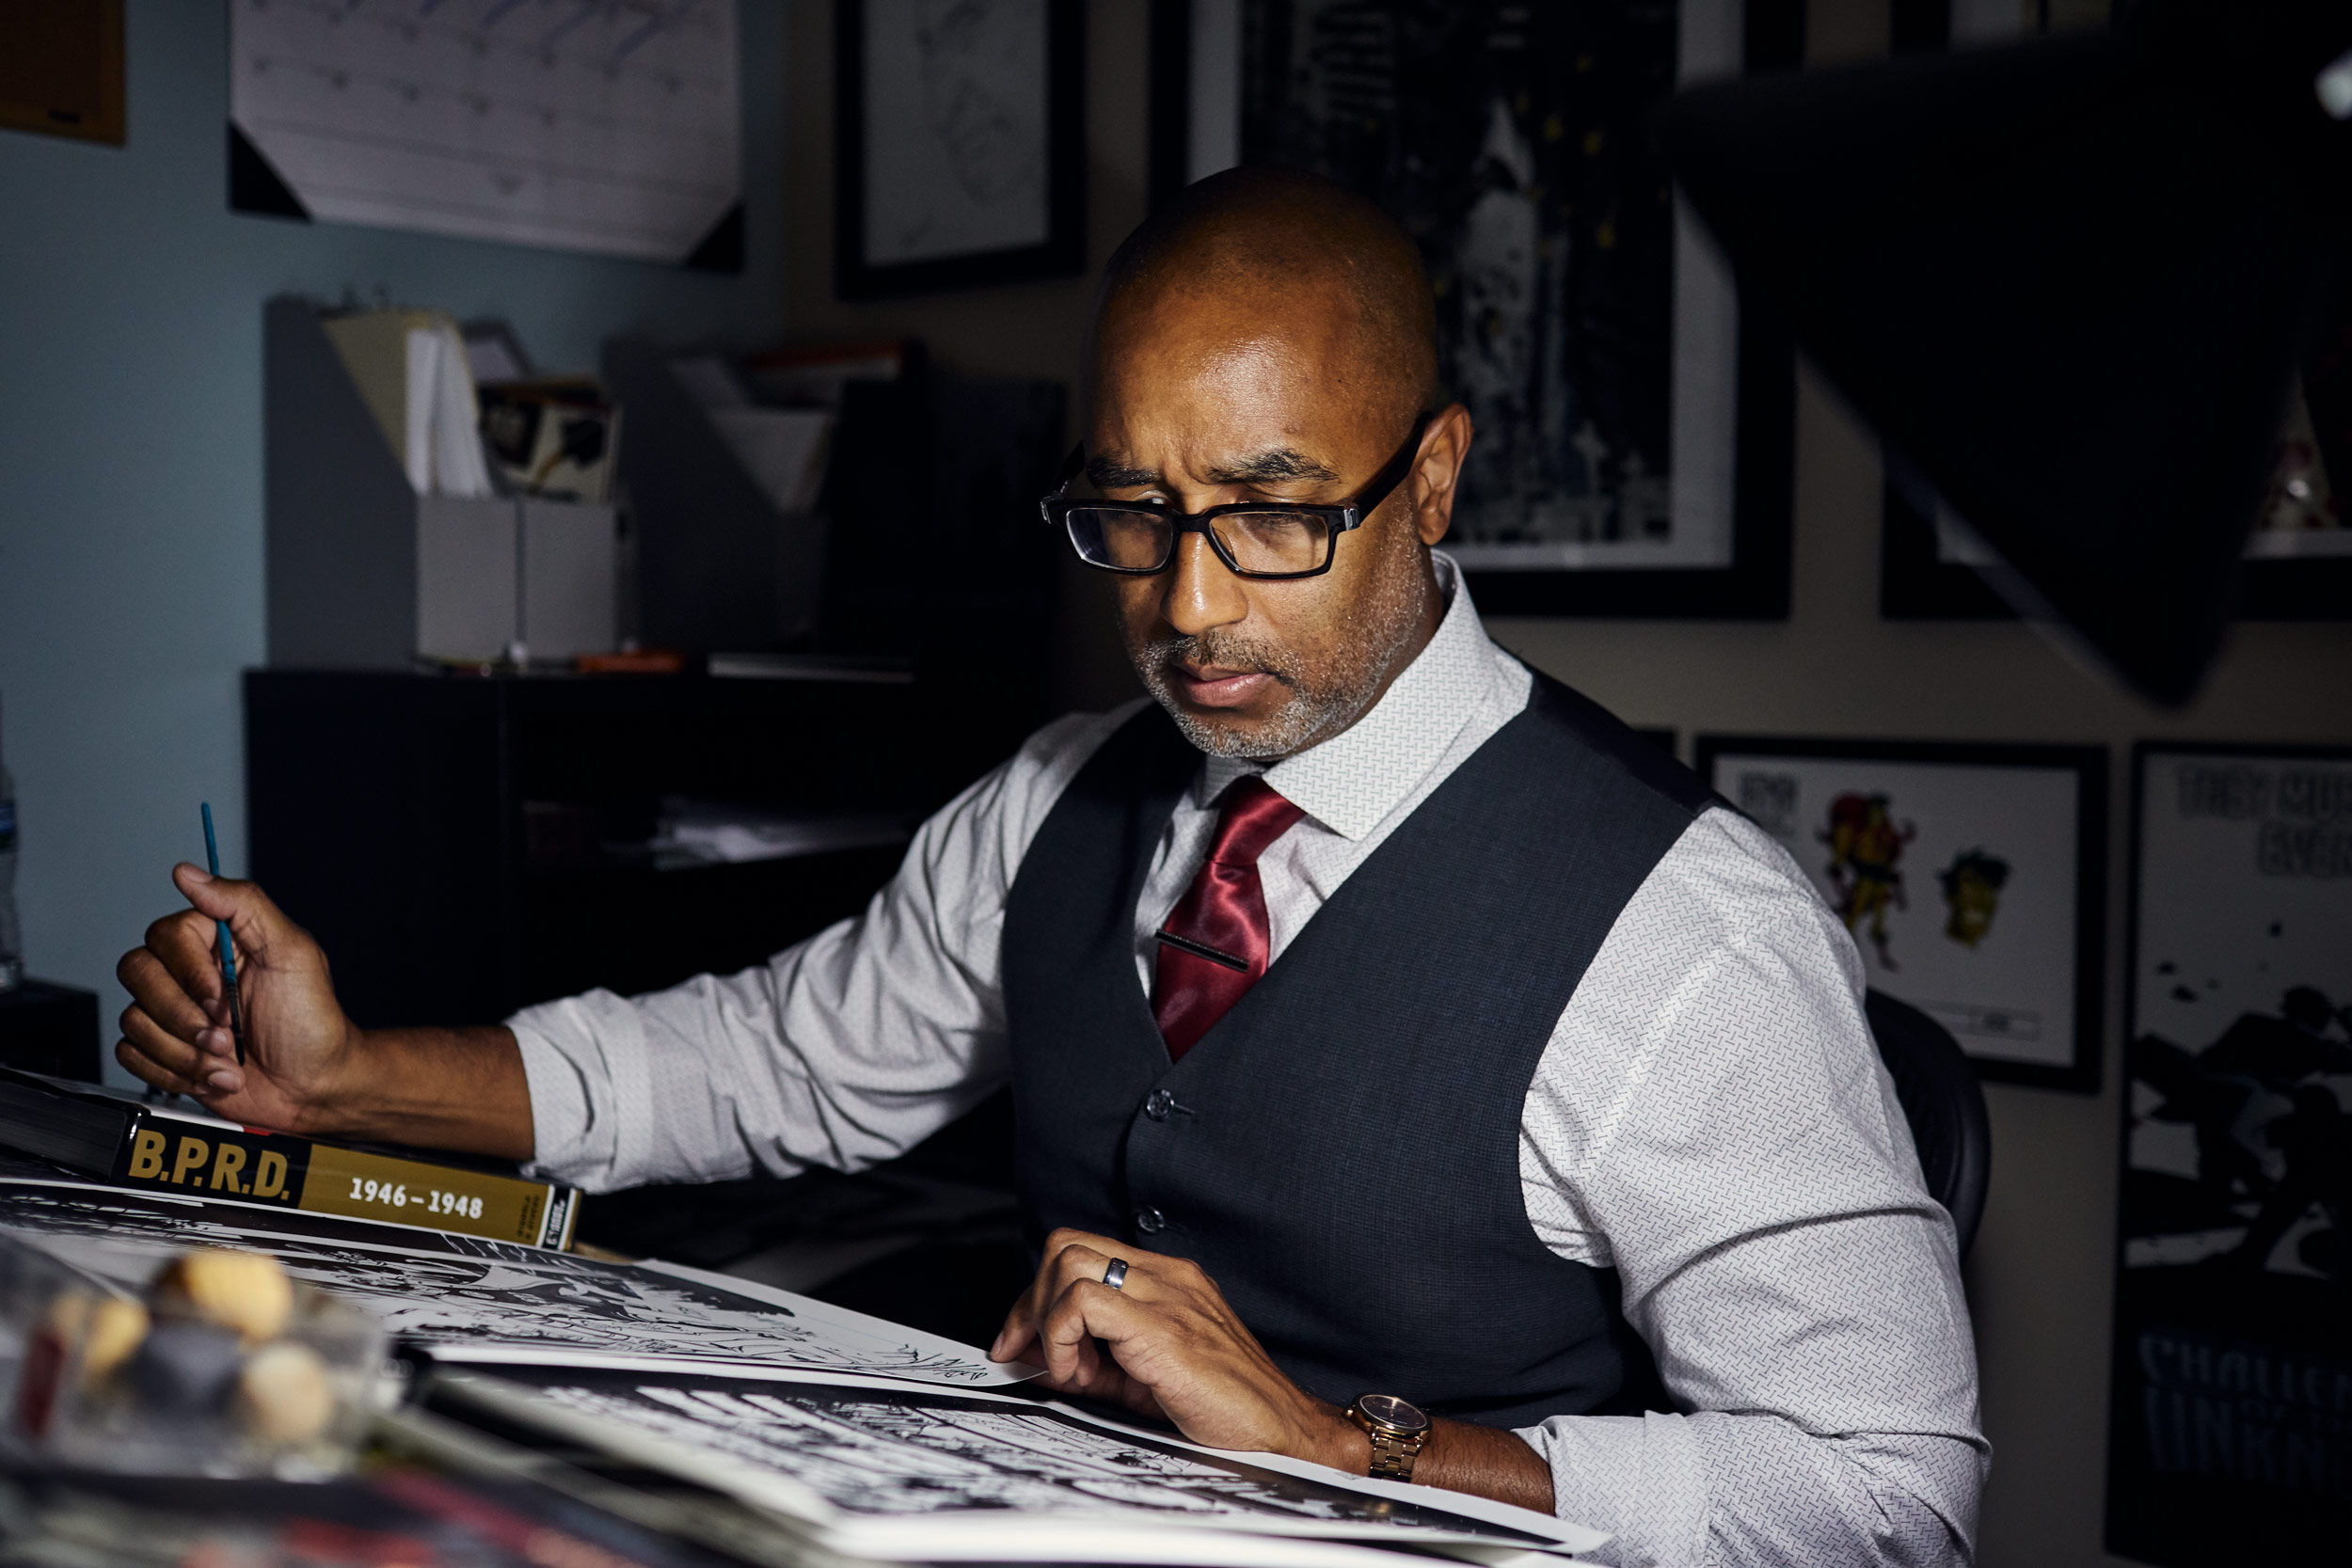 shawn martinbrough illustrating comic, washington dc portrait photography